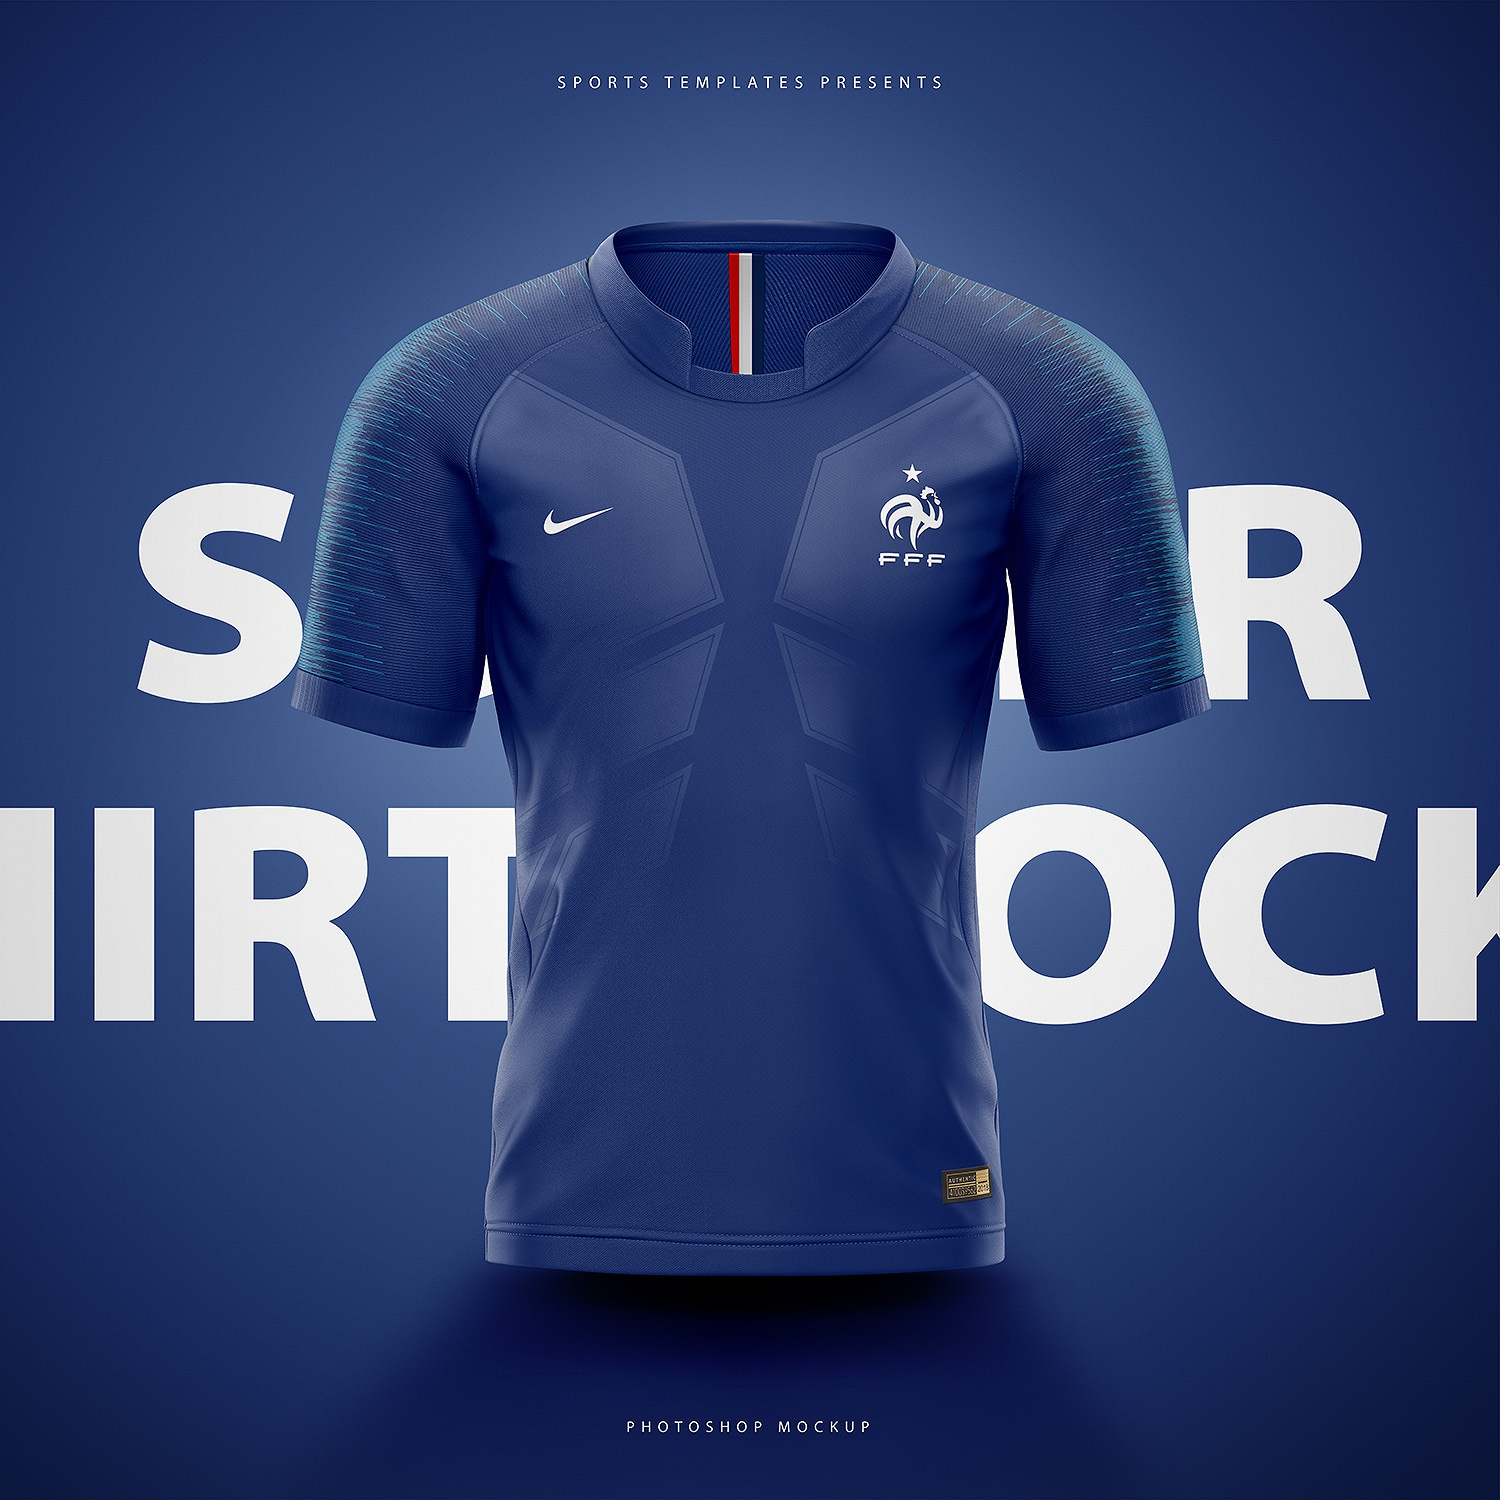 c50a8a02 France soccer football world cup 2018 shirt nike aeroswift photoshop  template.